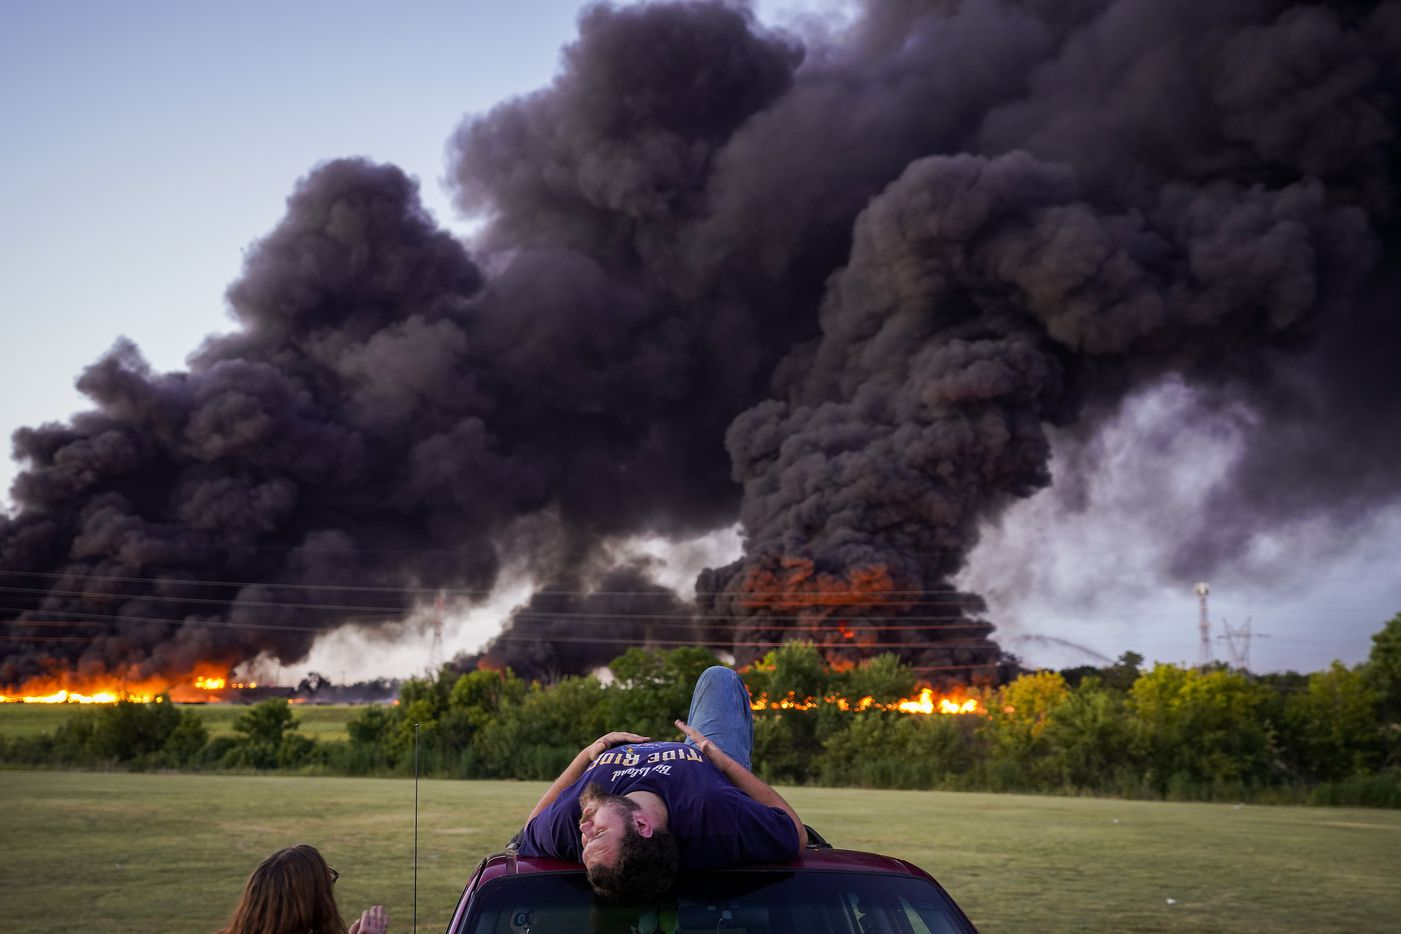 Dakota Stewart sits atop his car in Tyre Park as he watches fire crews battle a massive blaze in an industrial area of Grand Prairie just before sunrise on Wednesday, Aug. 19, 2020.